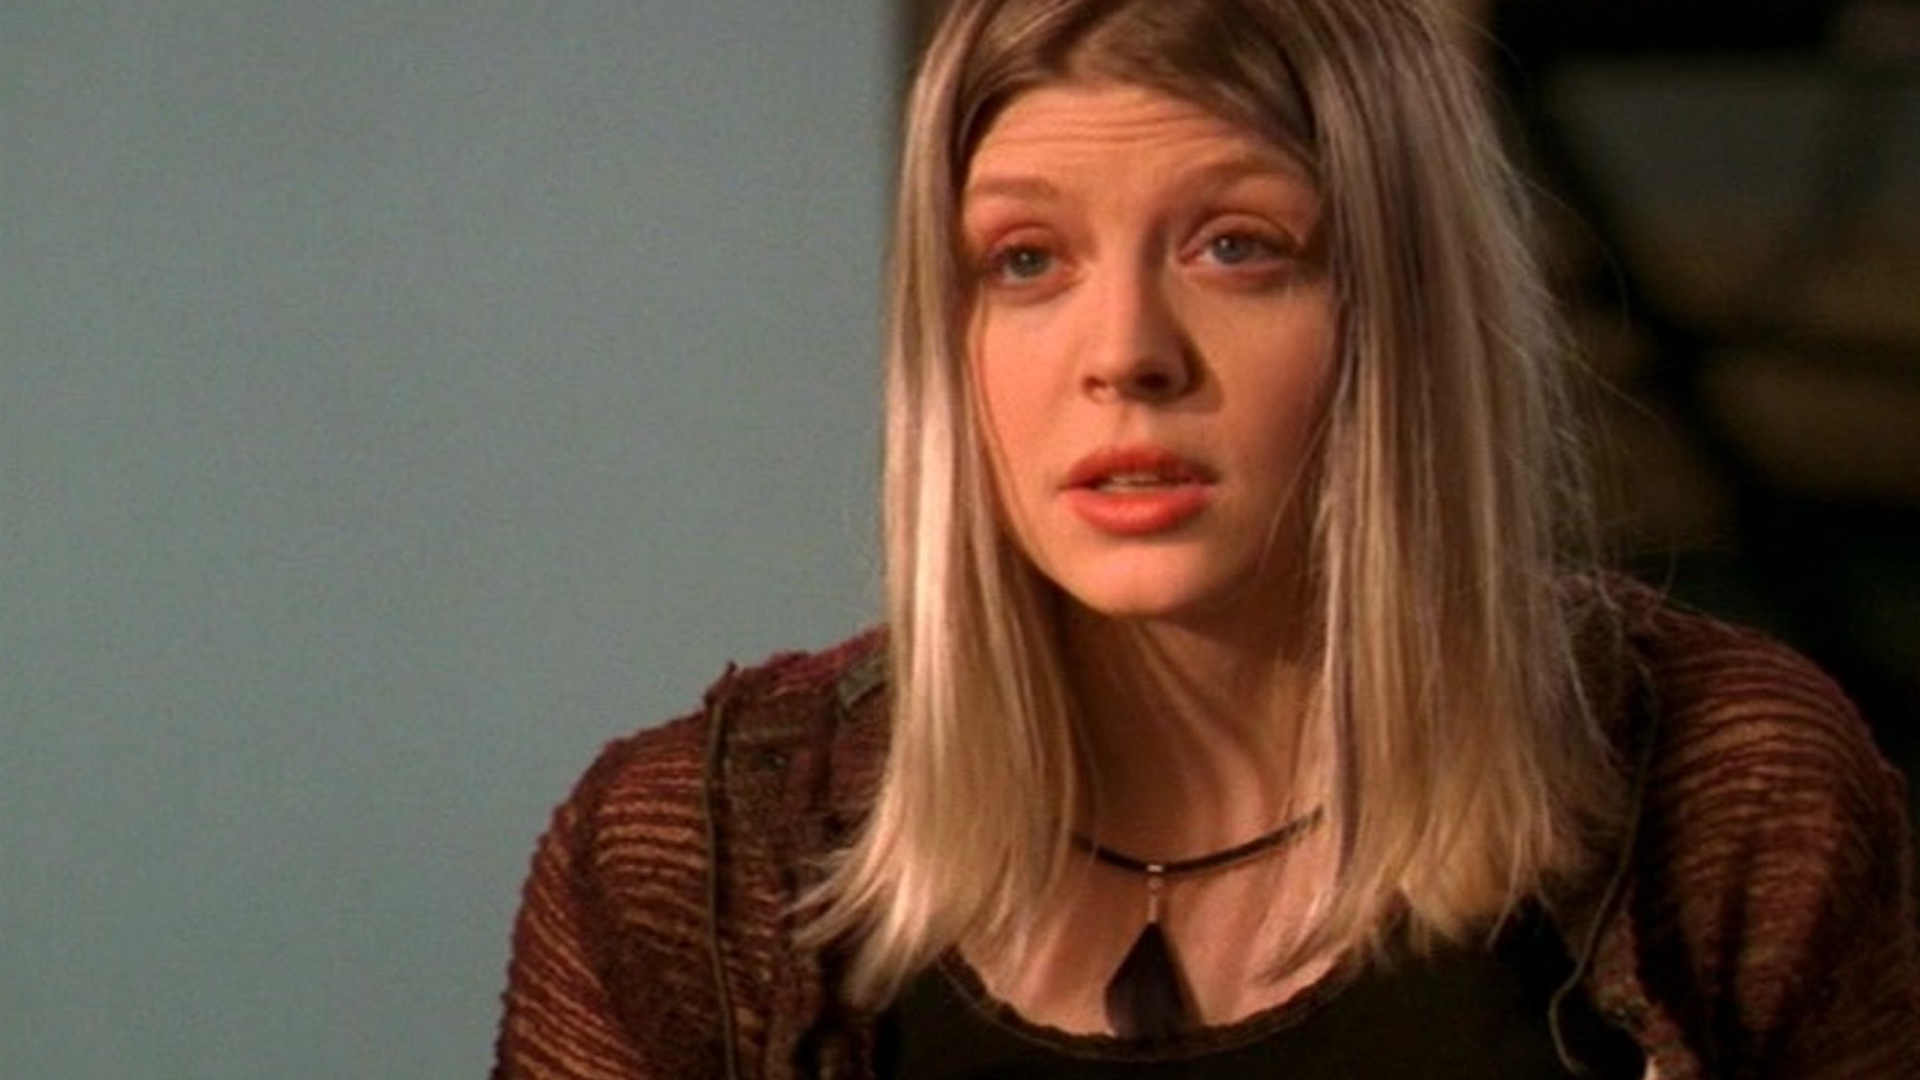 Former Buffy Star Amber Benson Adds More Accusations Against Joss Whedon